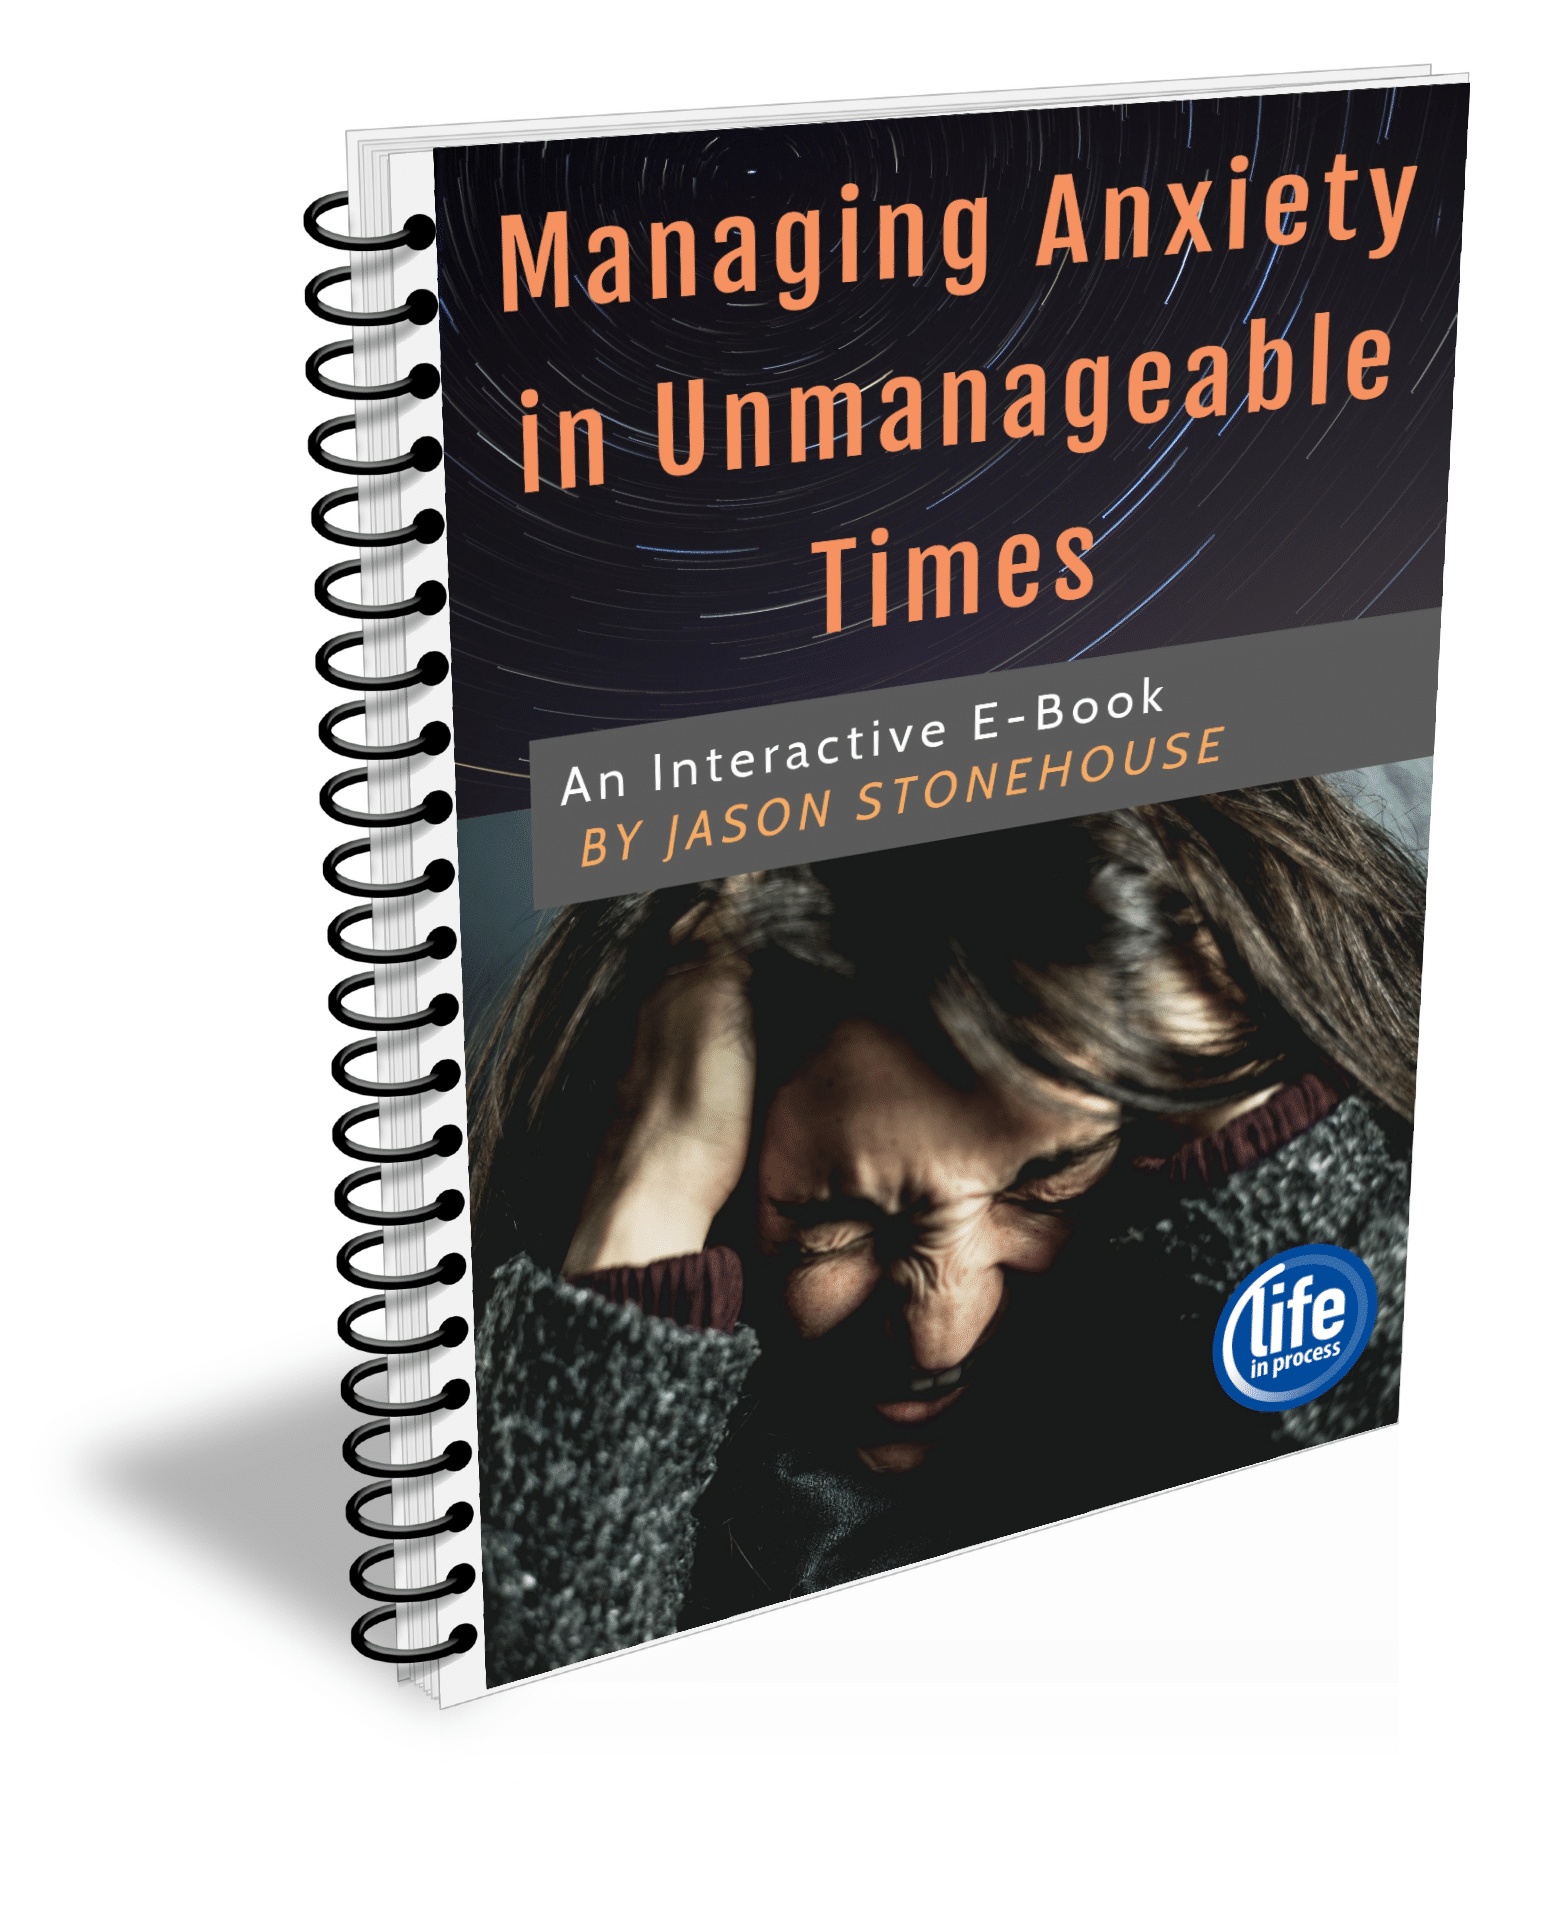 Managing Anxiety E-Book